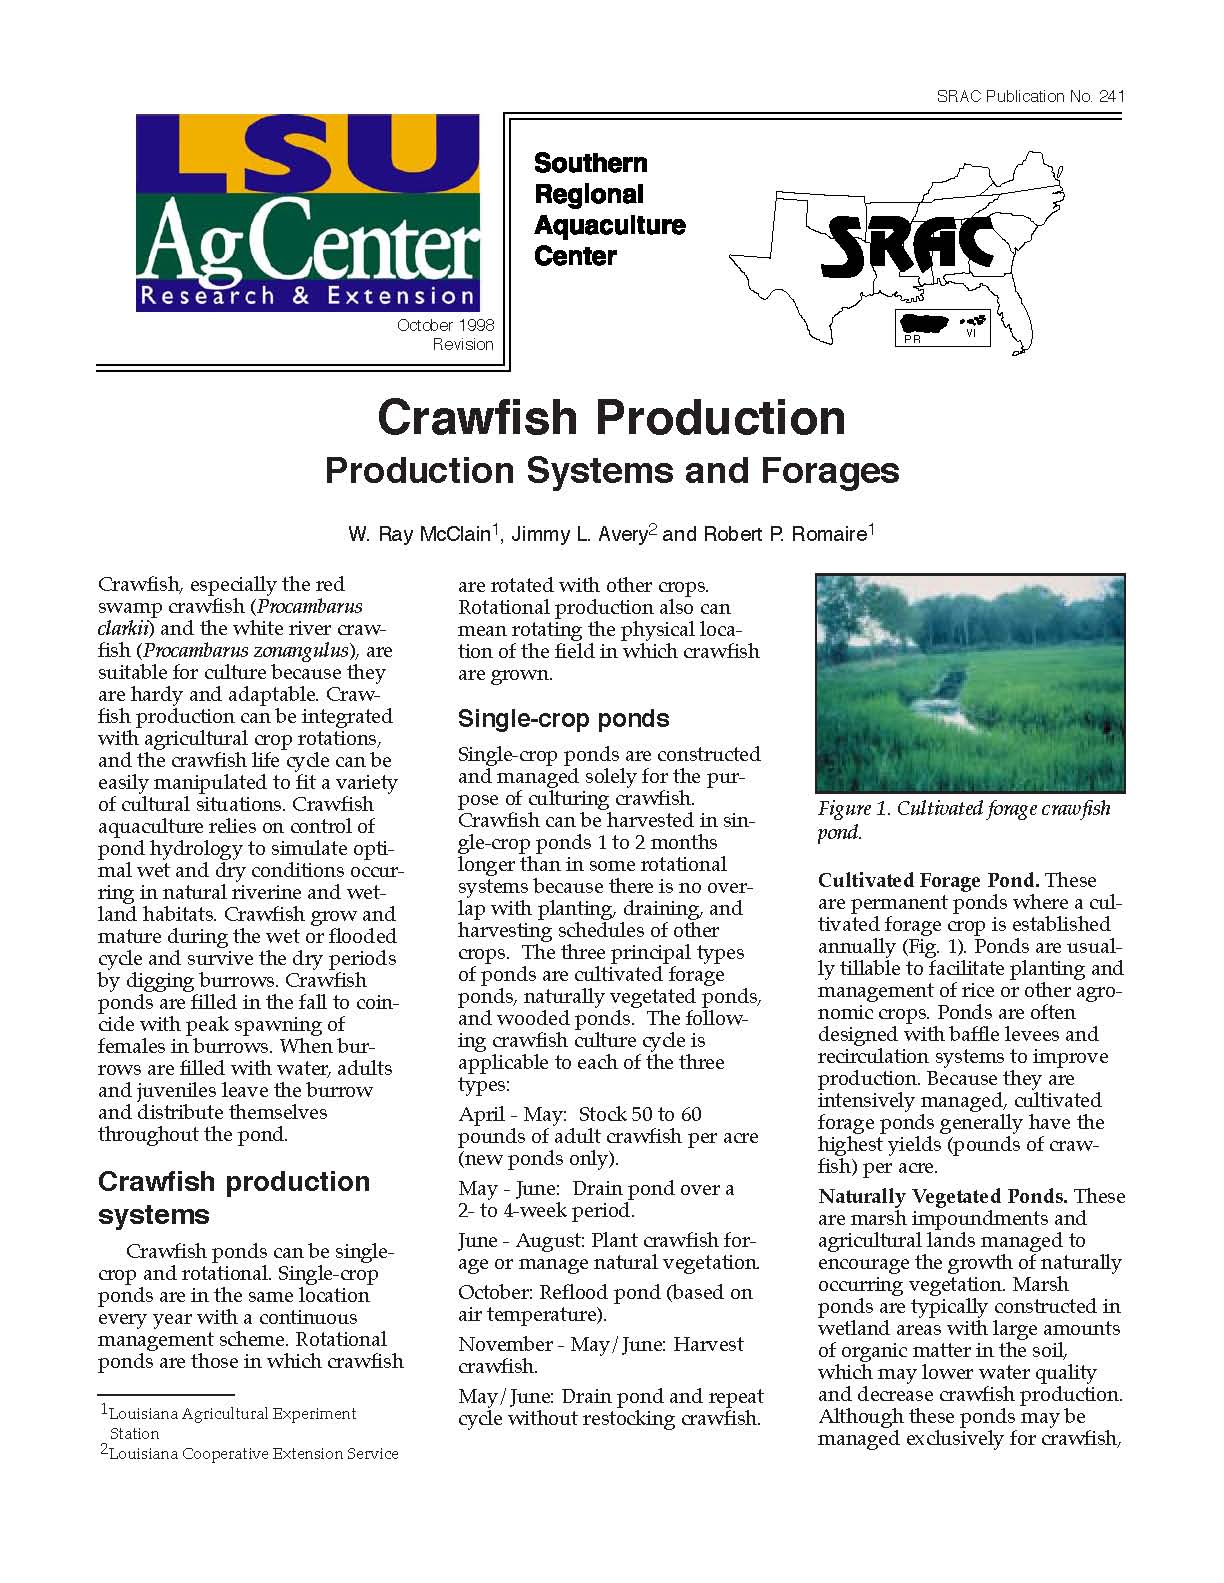 Crawfish Production: Production Systems and Forages